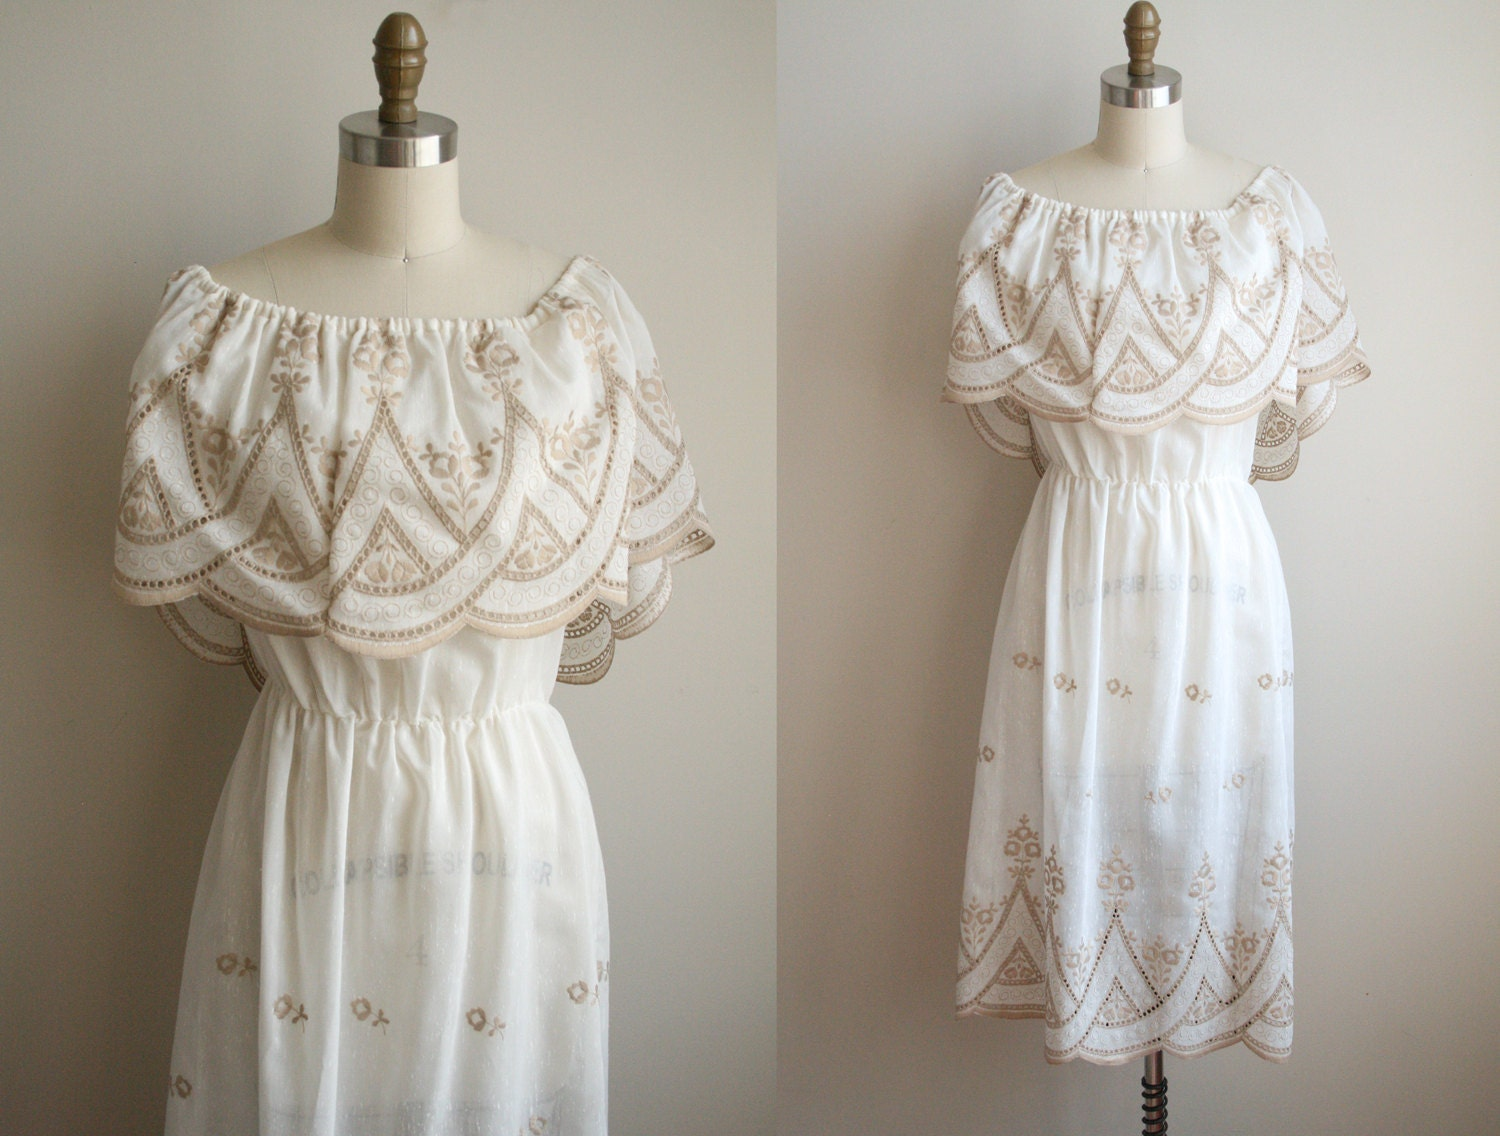 Vintage Mexican Wedding Dresses For  : Emboirderd mexican wedding dress white